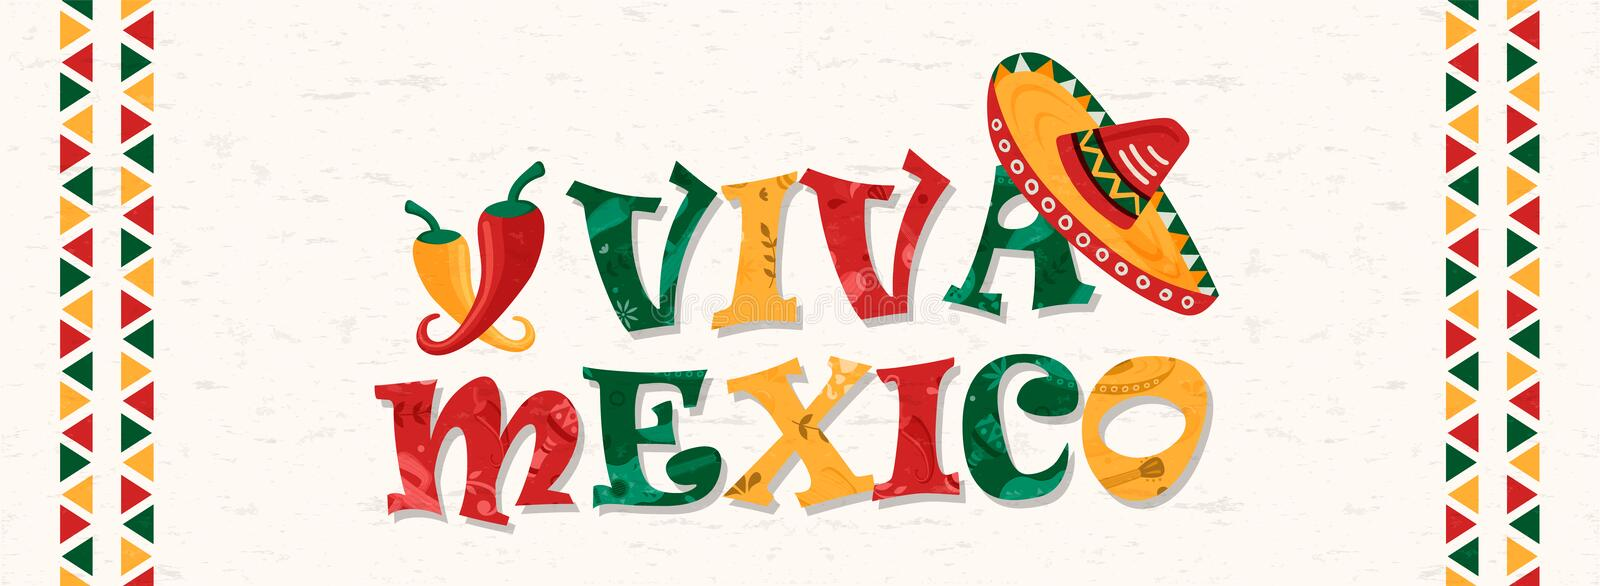 Viva Mexico quote banner for mexican celebration. Viva mexico typography quote with traditional mexican mariachi hat and chili peppers. Web banner illustration vector illustration